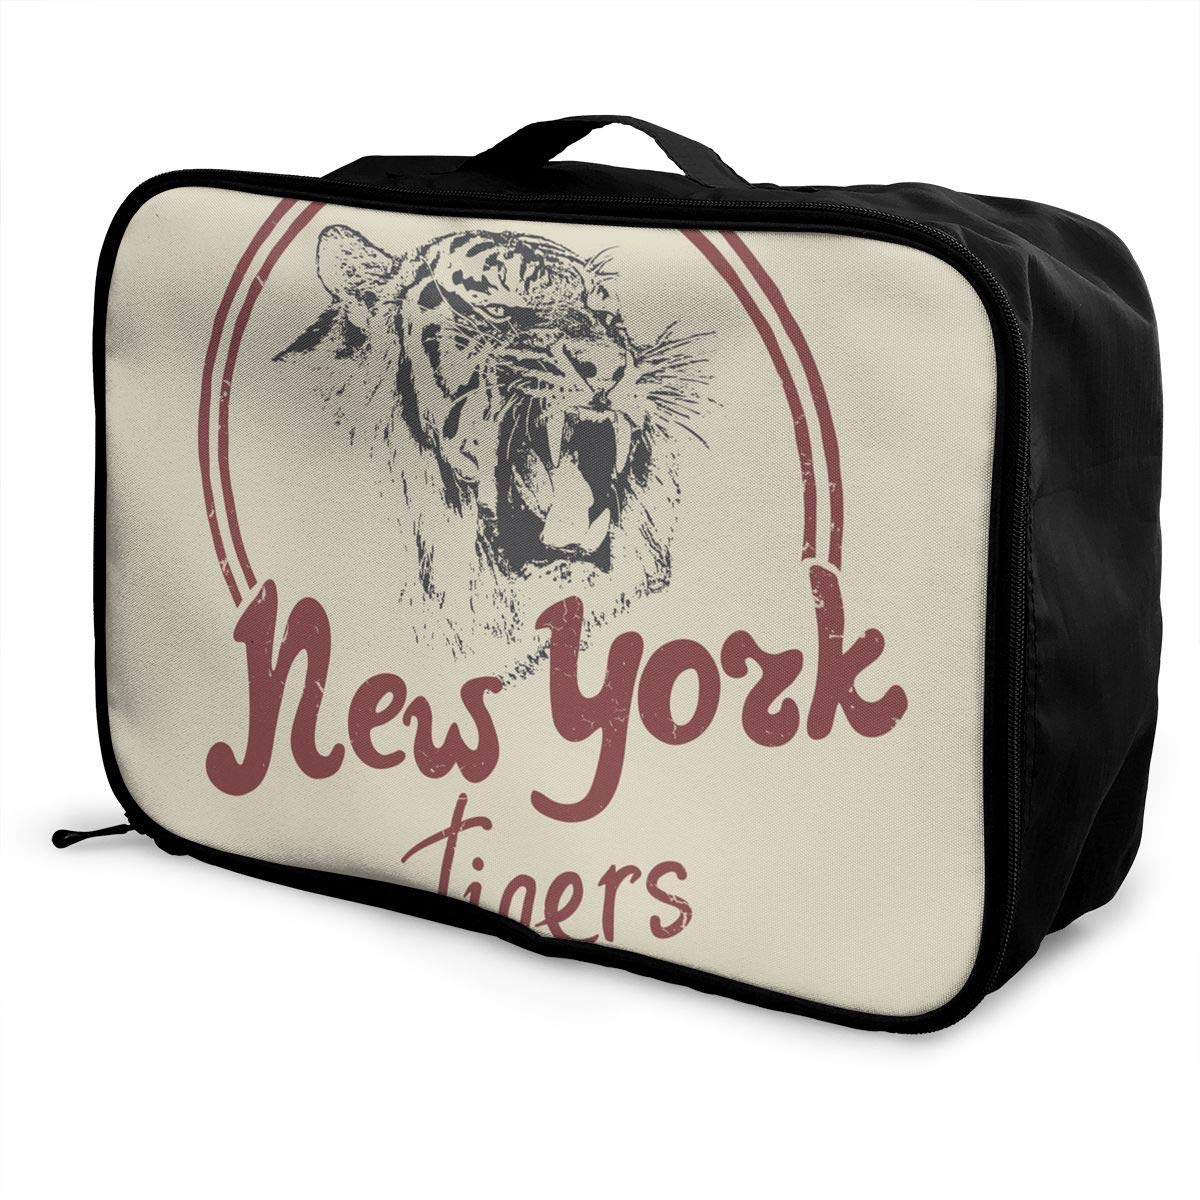 ADGAI New York Tiger Retro Label Canvas Travel Weekender Bag,Fashion Custom Lightweight Large Capacity Portable Luggage Bag,Suitcase Trolley Bag